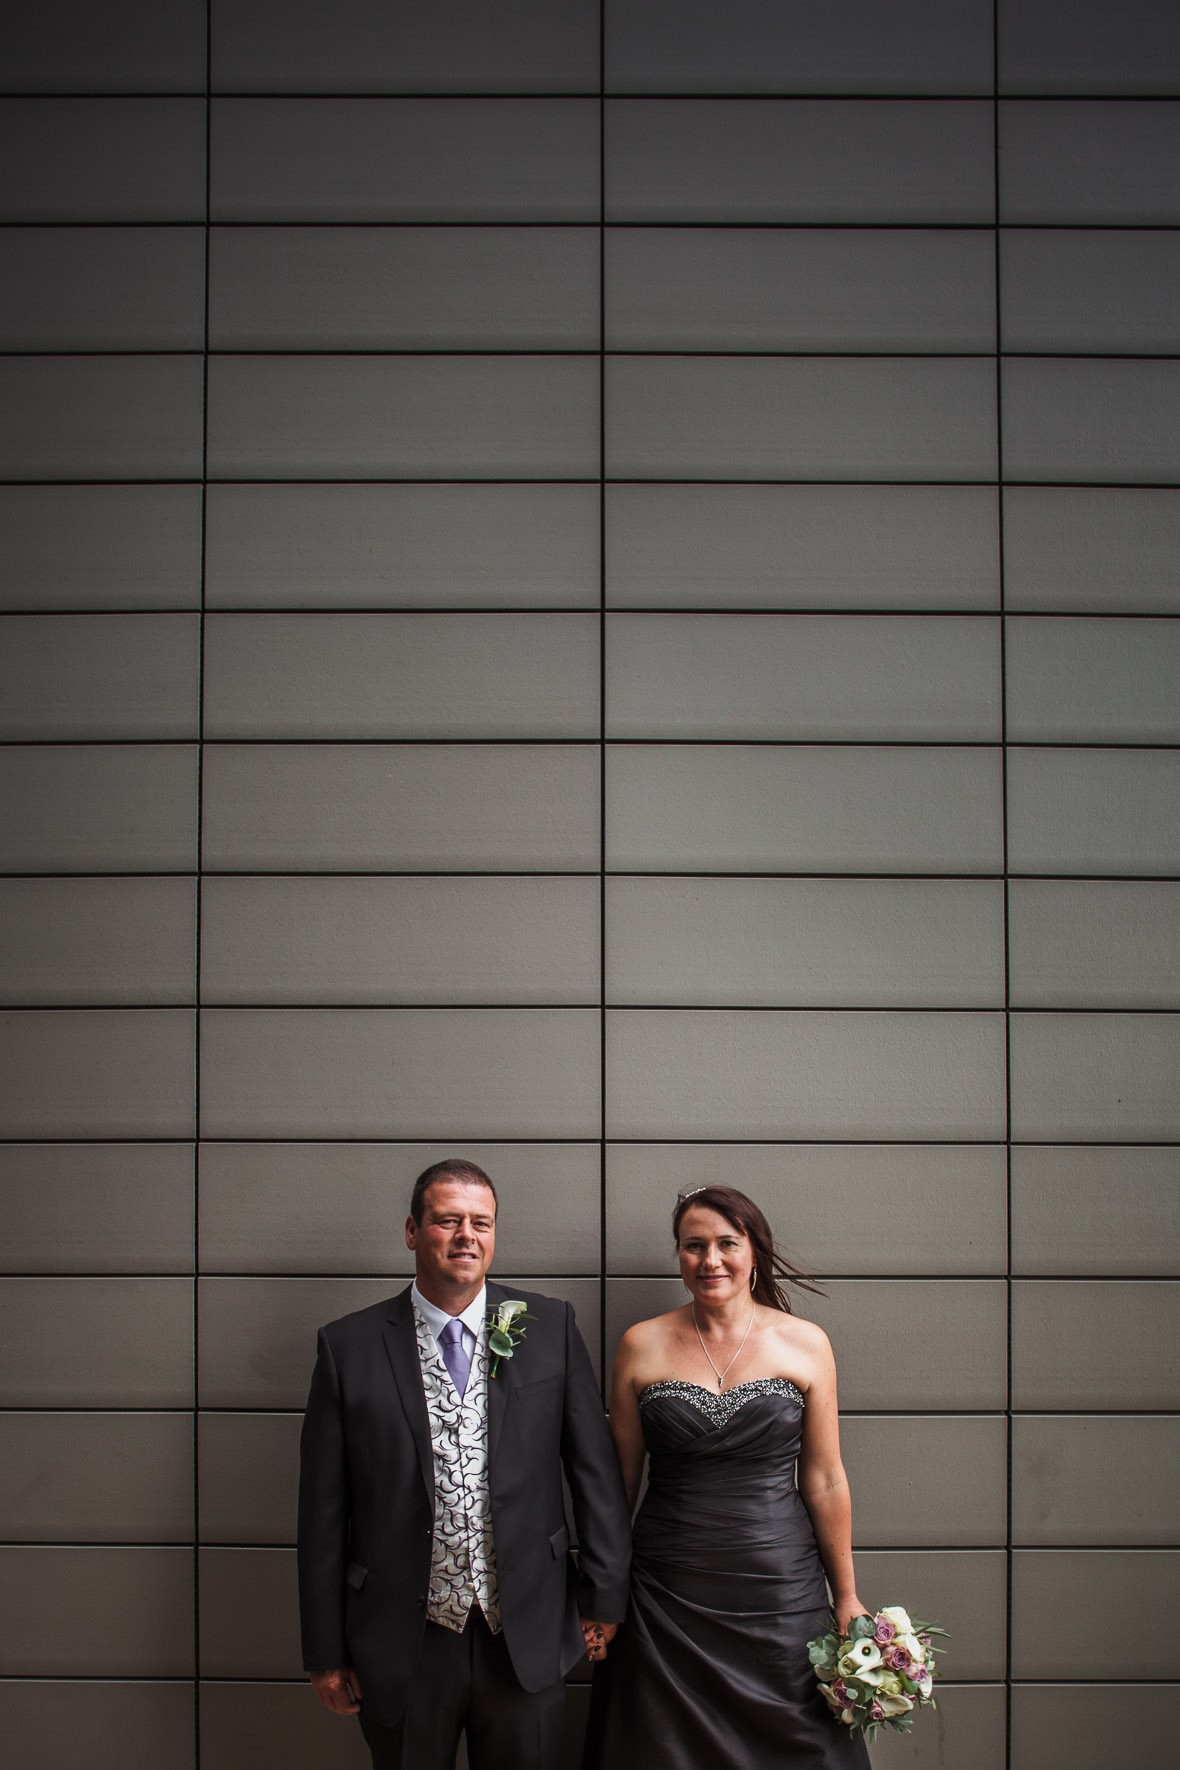 301-sheffield-wedding-photographer